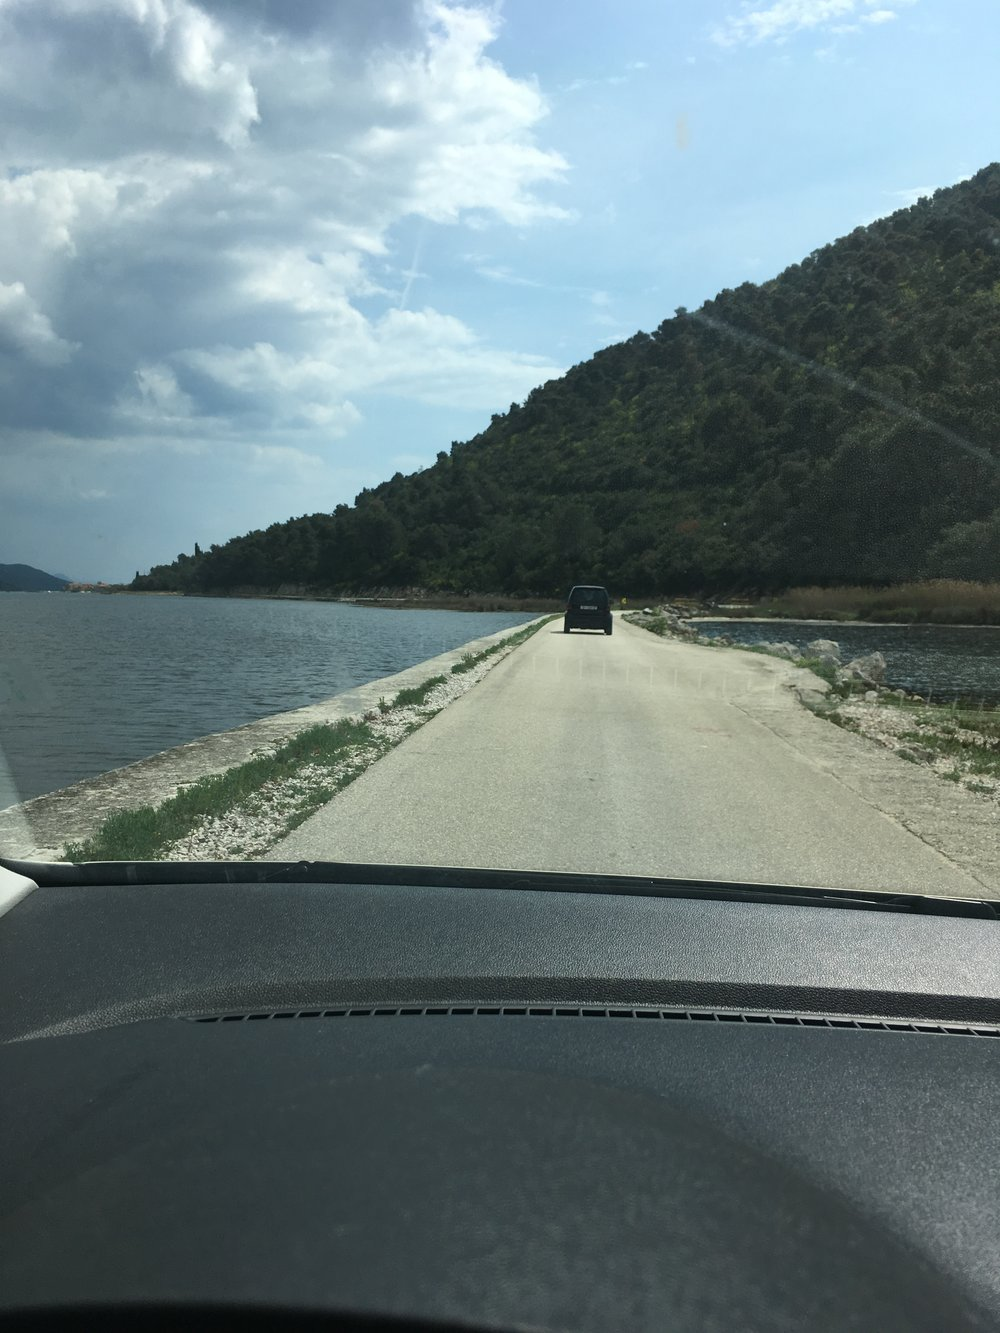 Following my Airbnb host from Ston to his house on Broce, on the Peljasač peninsula